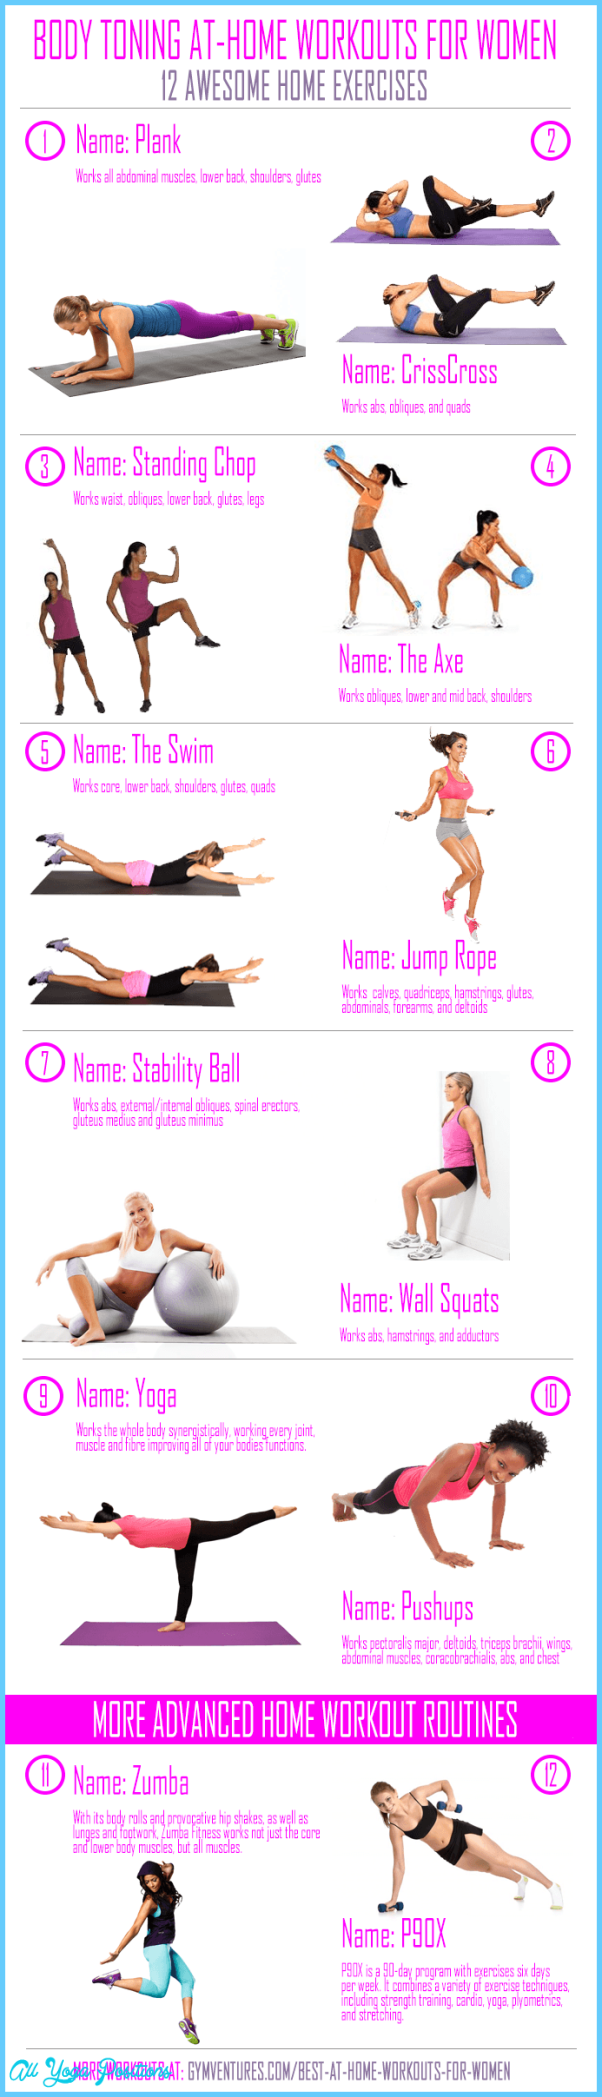 At-Home-Workouts-for-Women.png